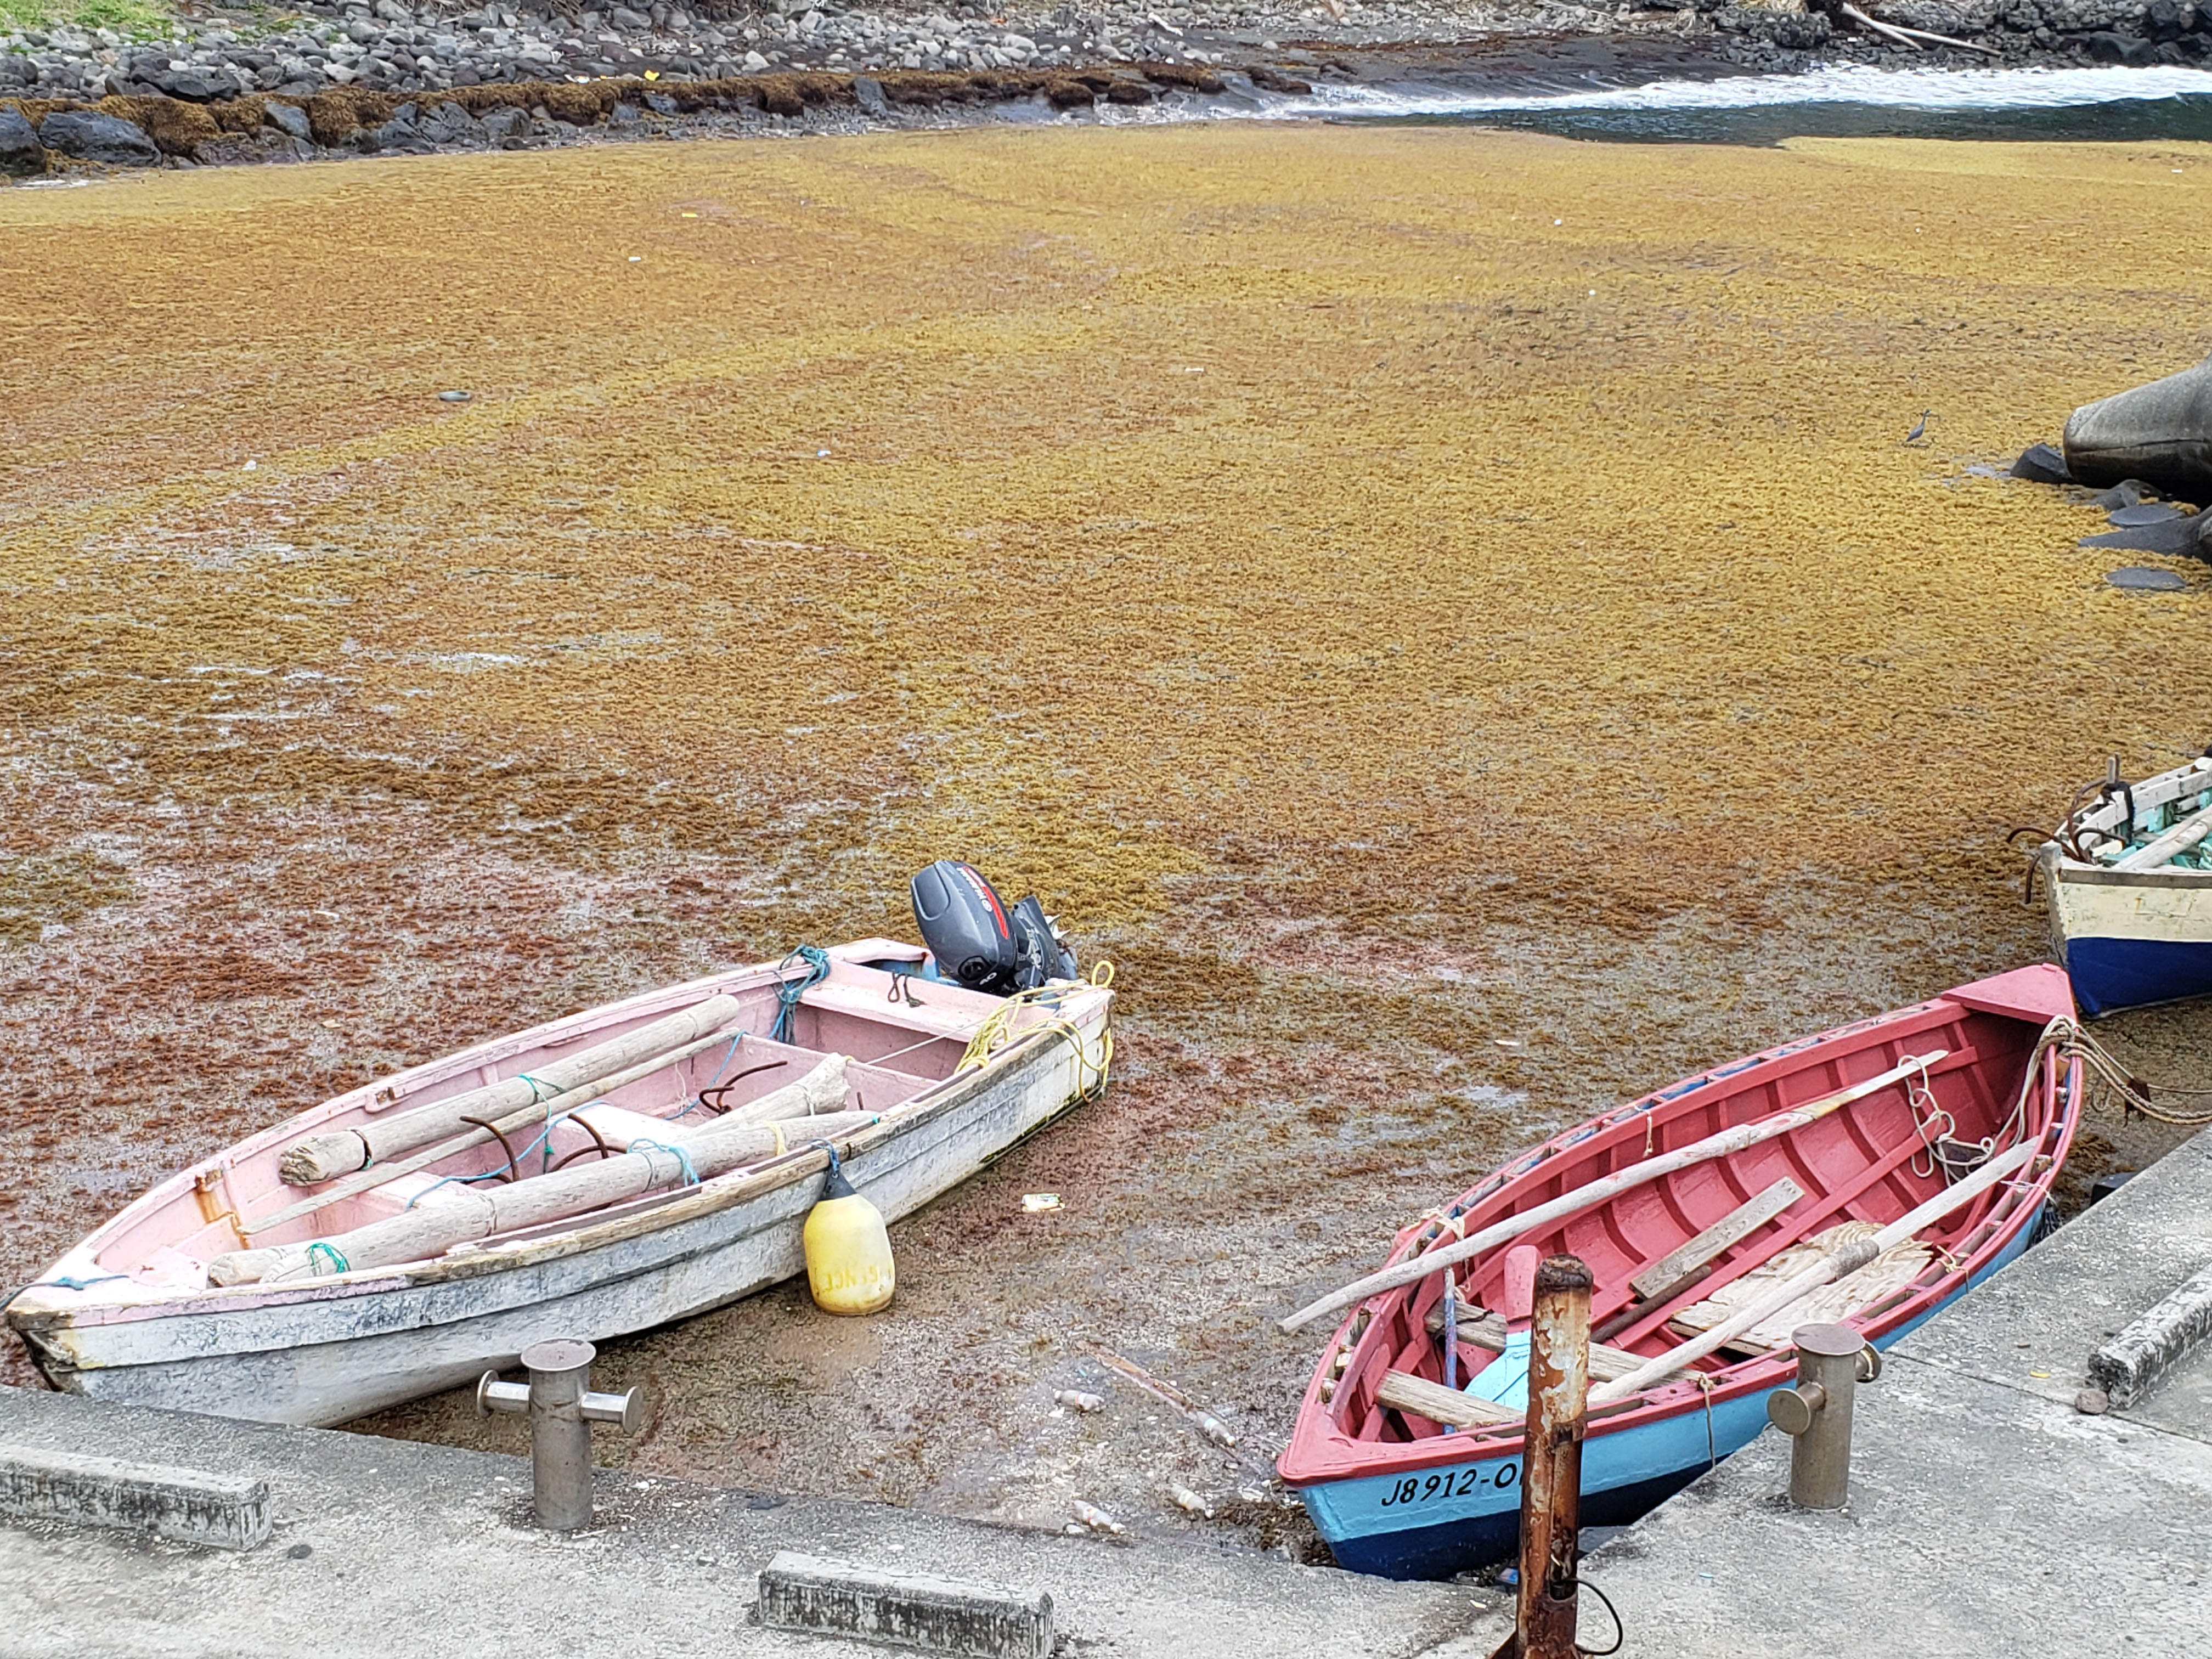 Sargassum inundation -- seen here in Saint Vincent and the Grenadines -- continues to affect countries across the Caribbean